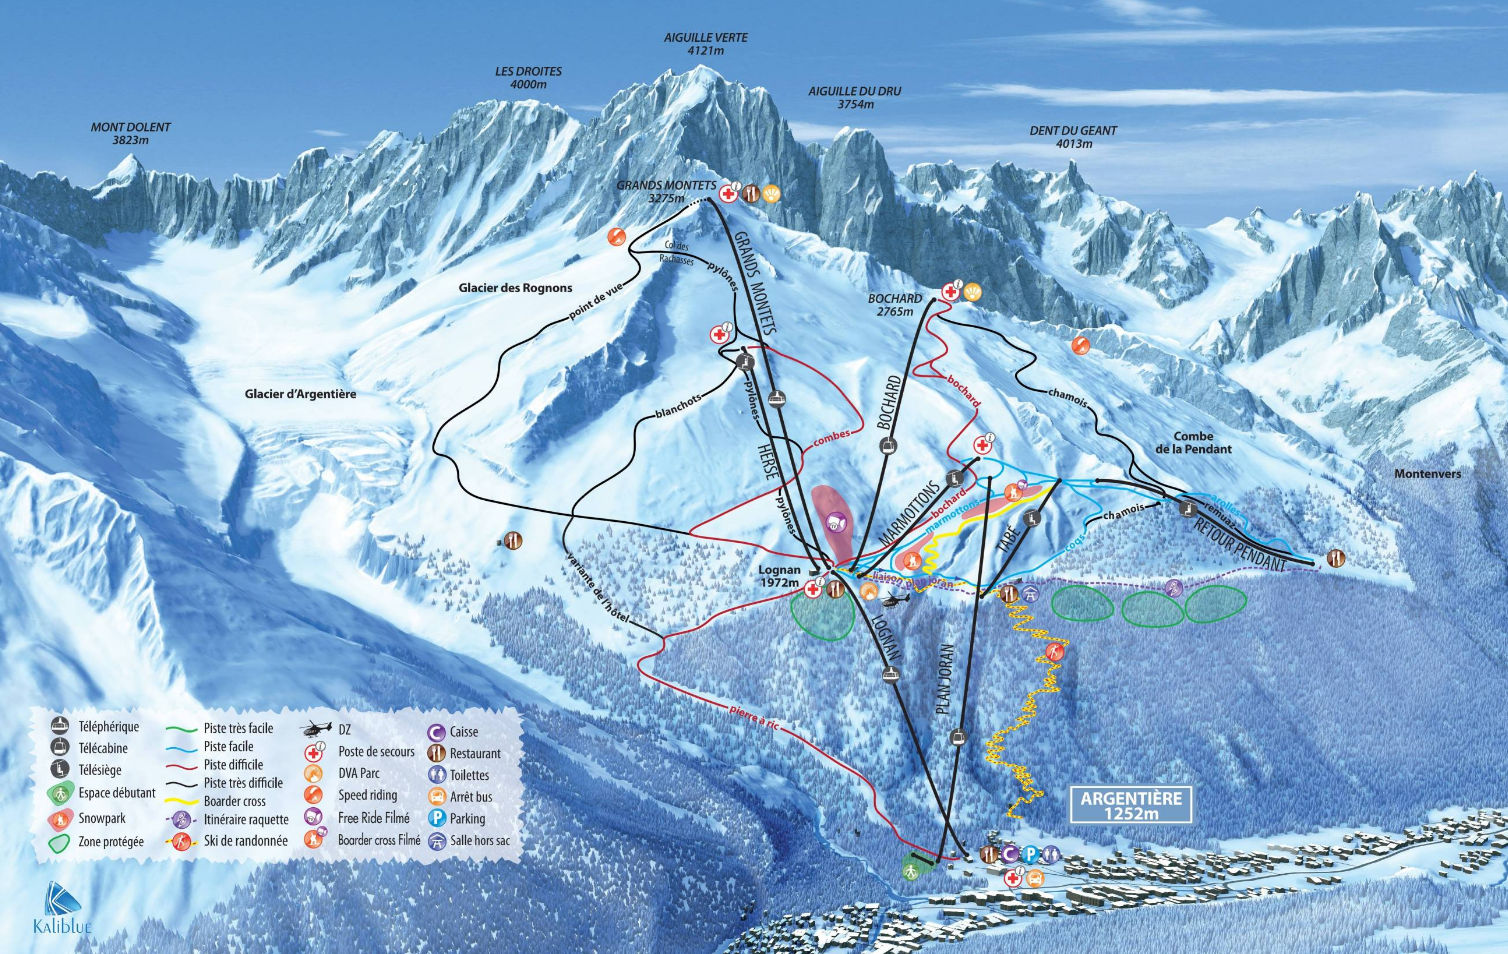 les grands montets and lognan - ski areas in chamonix